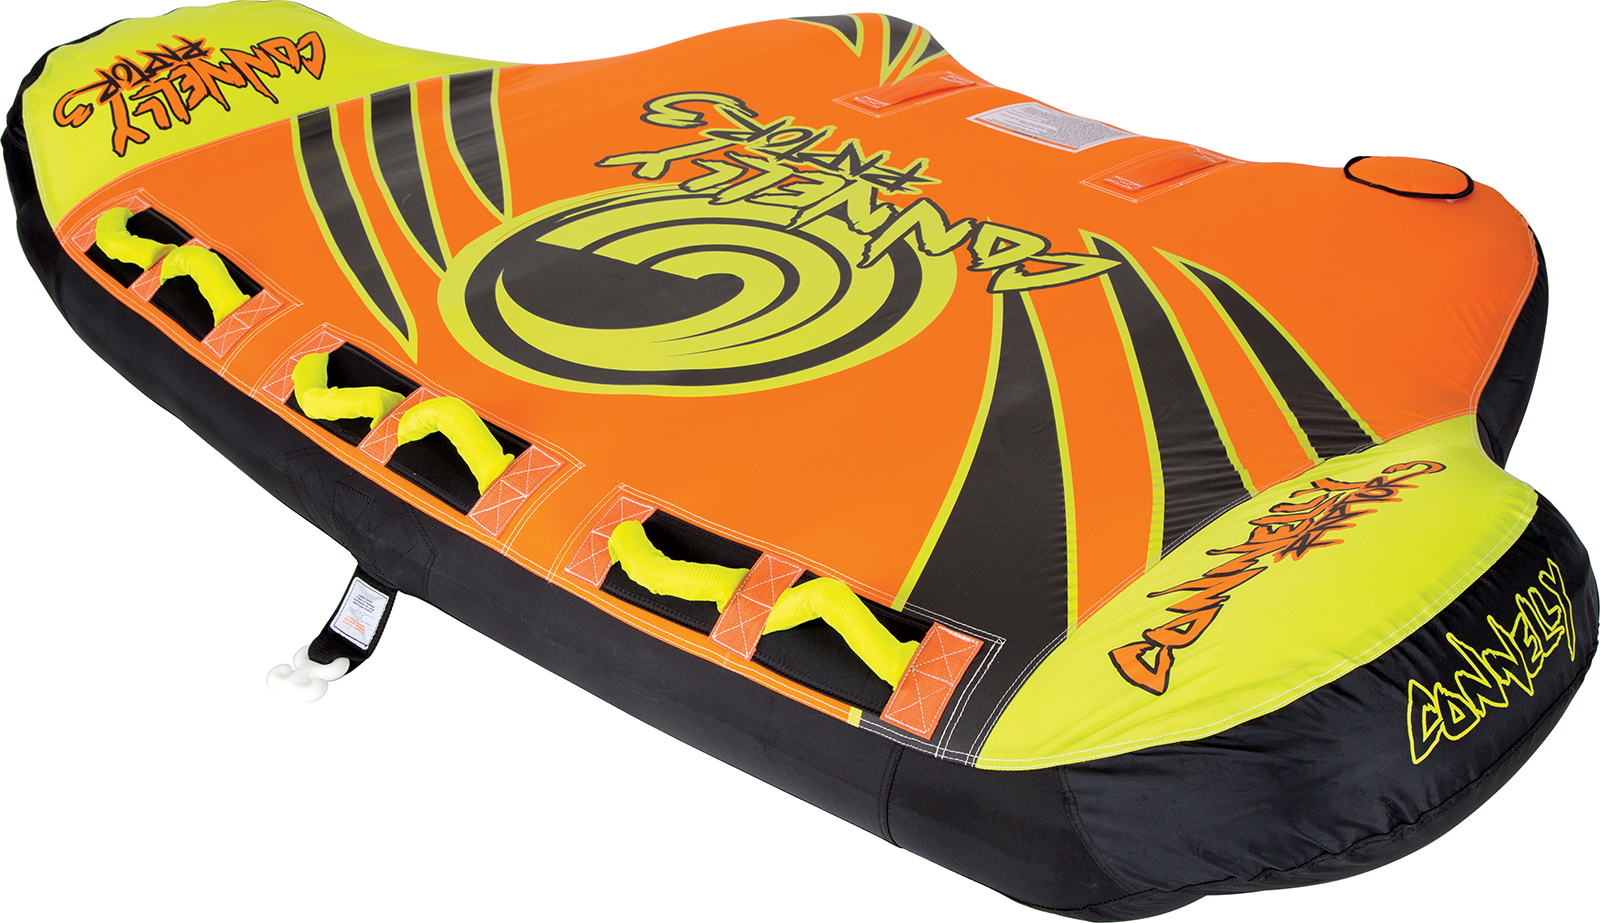 RAPTOR 3 TOWABLE TUBE CONNELLY 2018